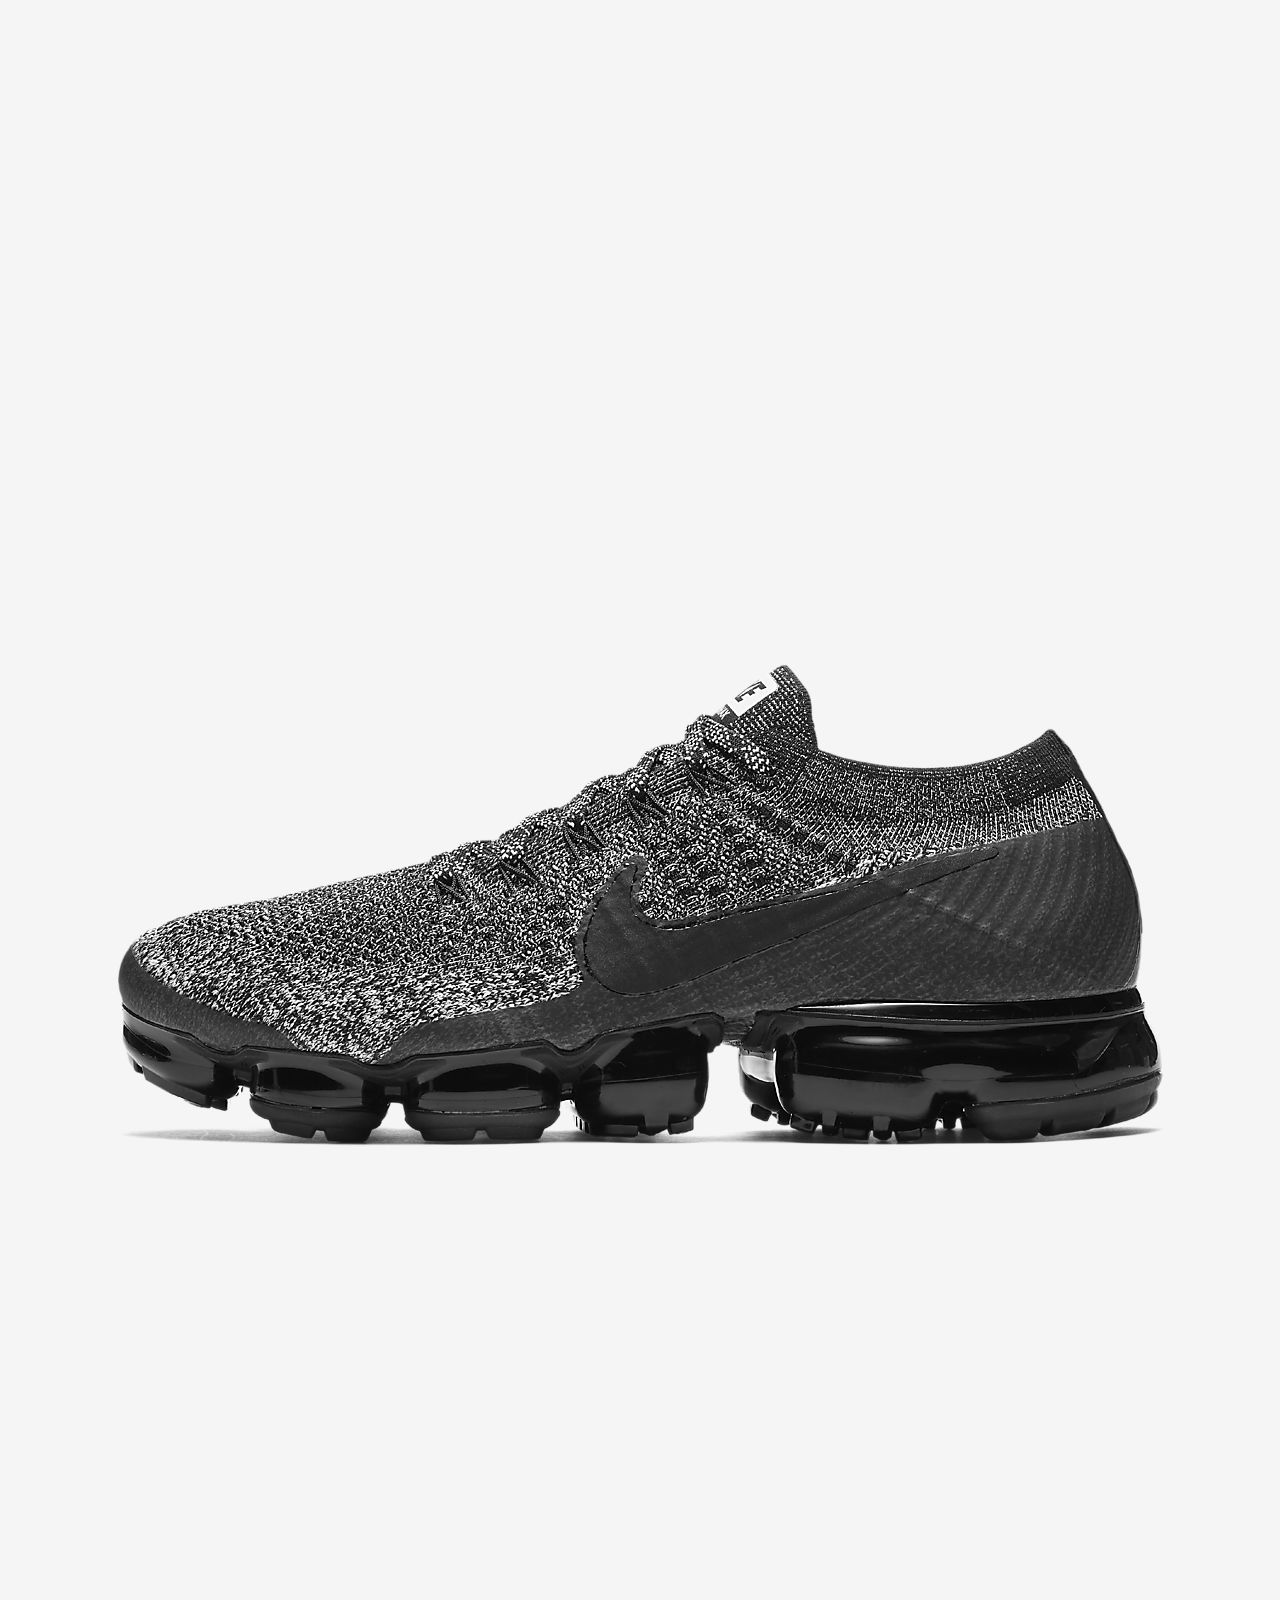 ... Nike Air VaporMax Flyknit Men's Running Shoe